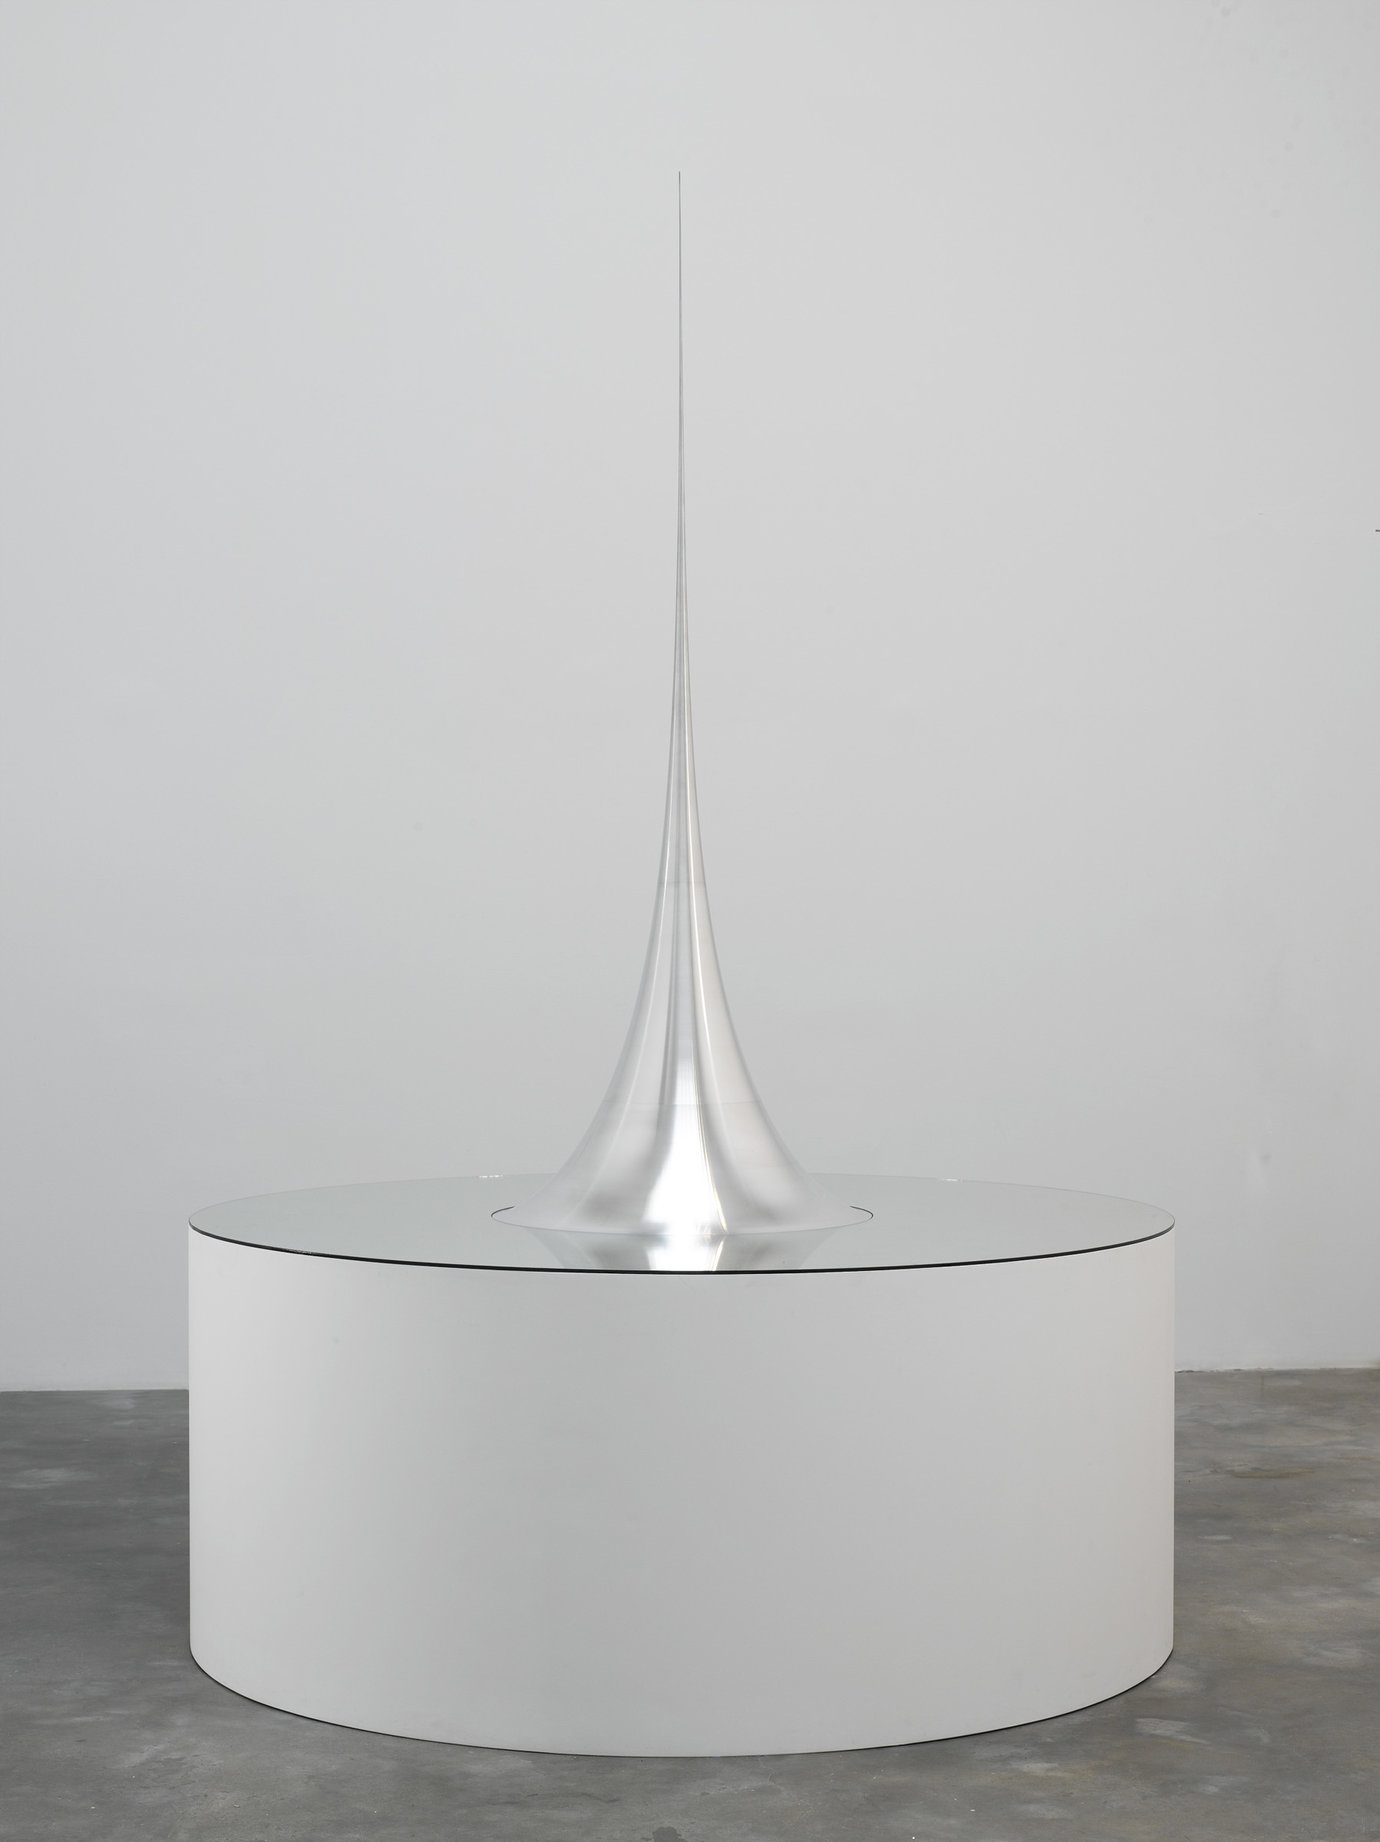 ", 2006. Aluminum and glass, 63"" high x 27-9/16"" diameter (160 cm x 70 cm), model